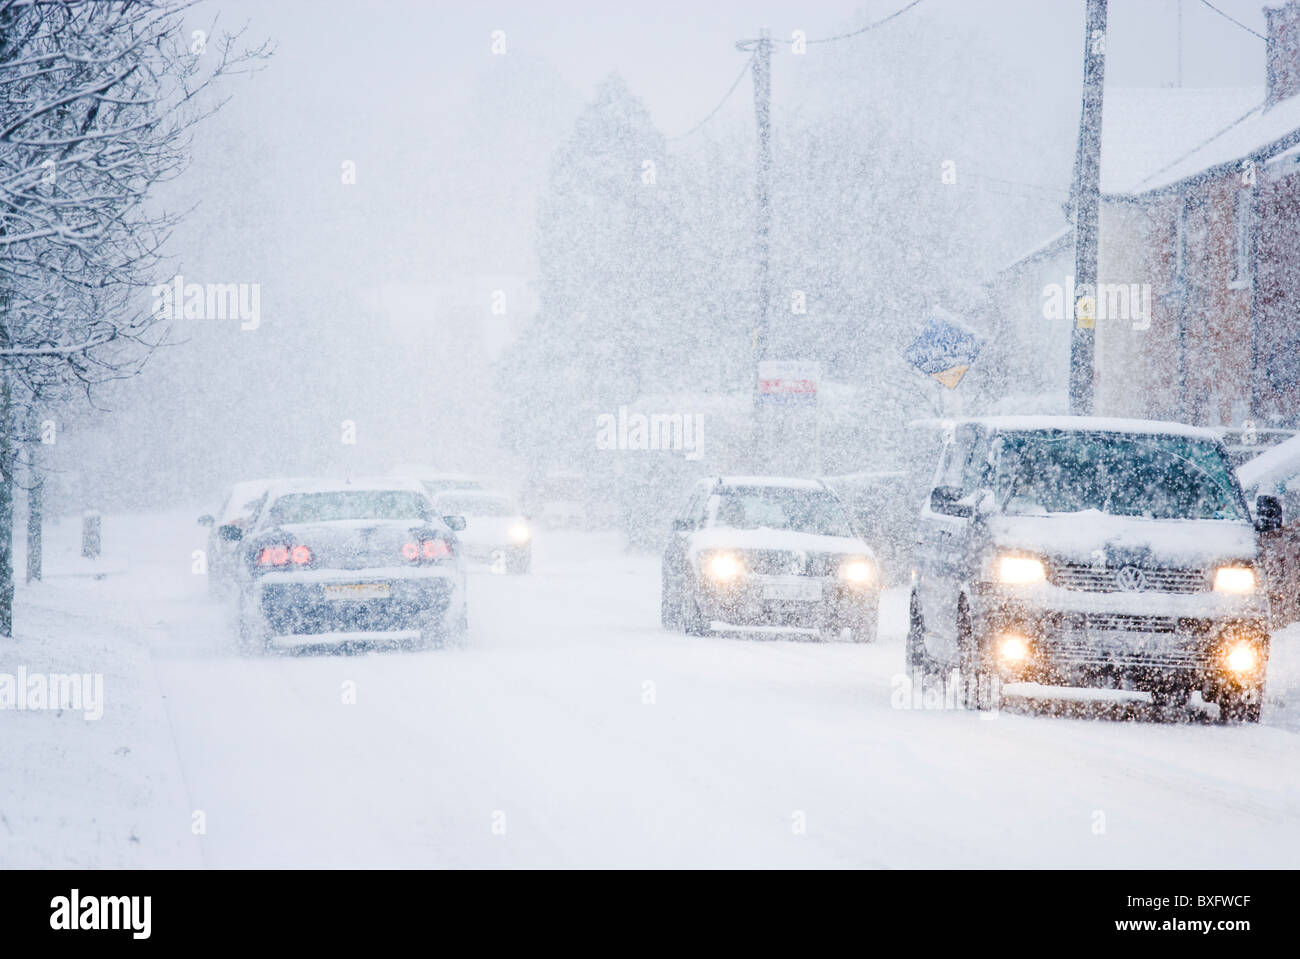 Voitures en blizzard. Surrey, UK Photo Stock